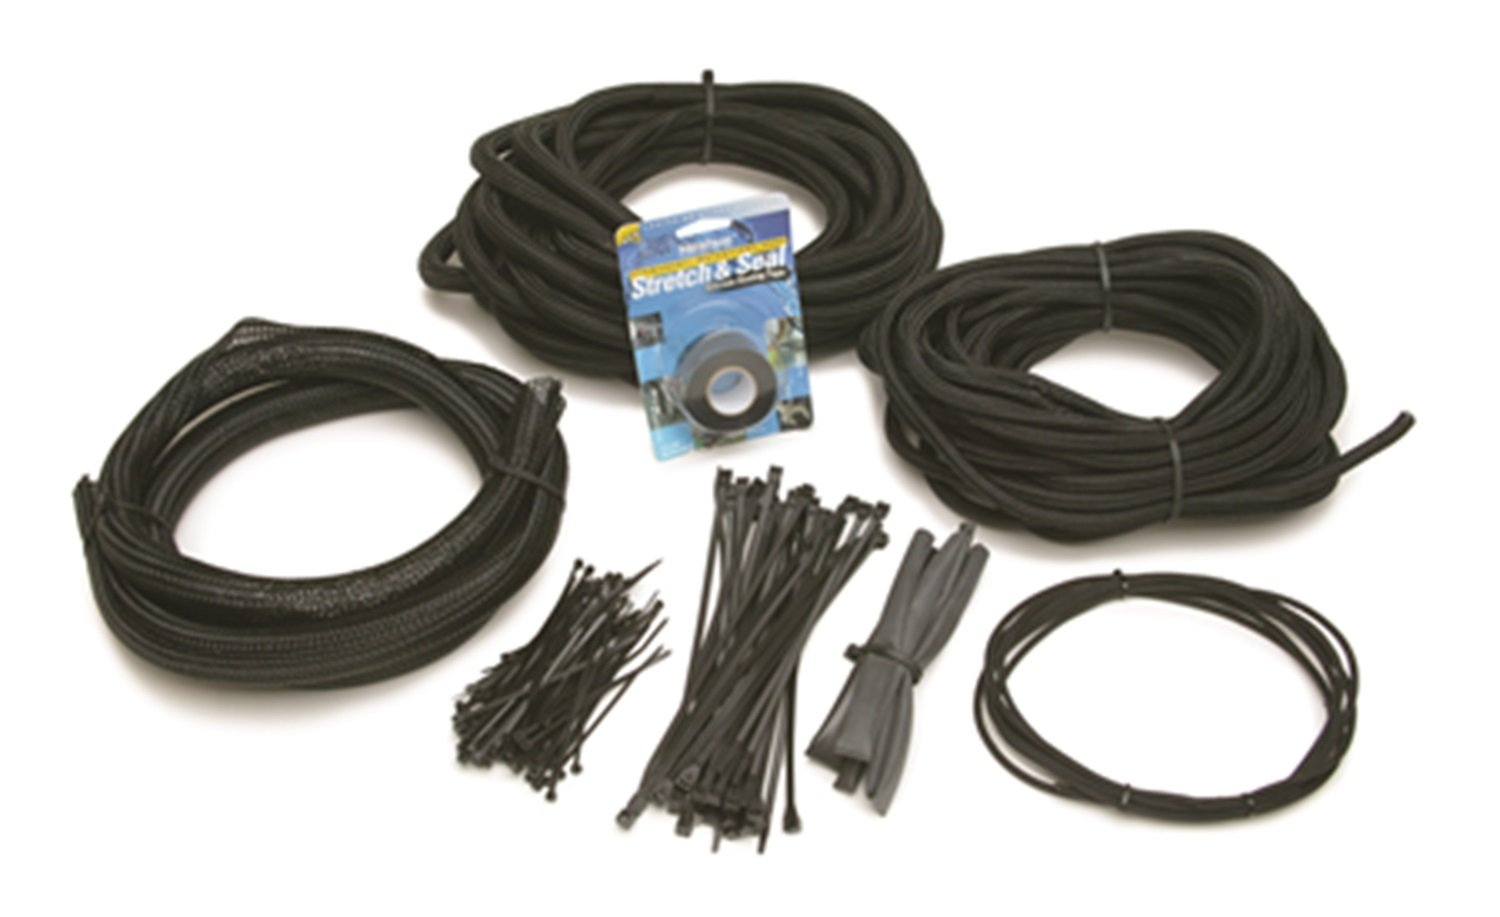 61KfhP ZlhL._SL1500_ amazon com painless wiring 70920 power braid chassis kit automotive painless wiring harness rebate at nearapp.co